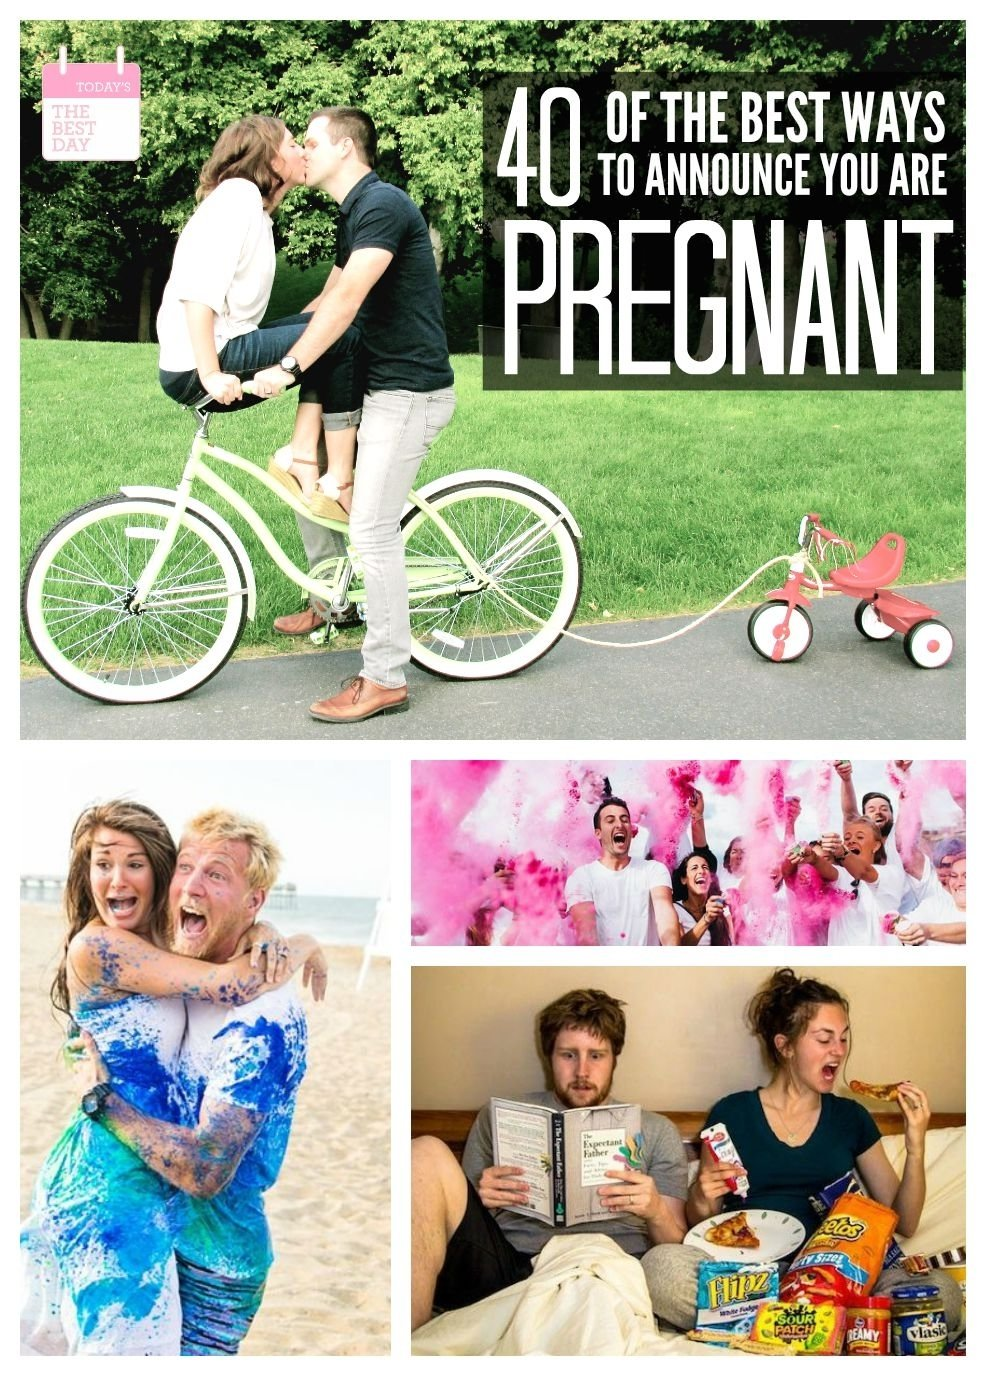 10 Fantastic Creative Ideas To Announce Pregnancy 40 of the best ways to announce you are pregnant todays the best day 2 2021